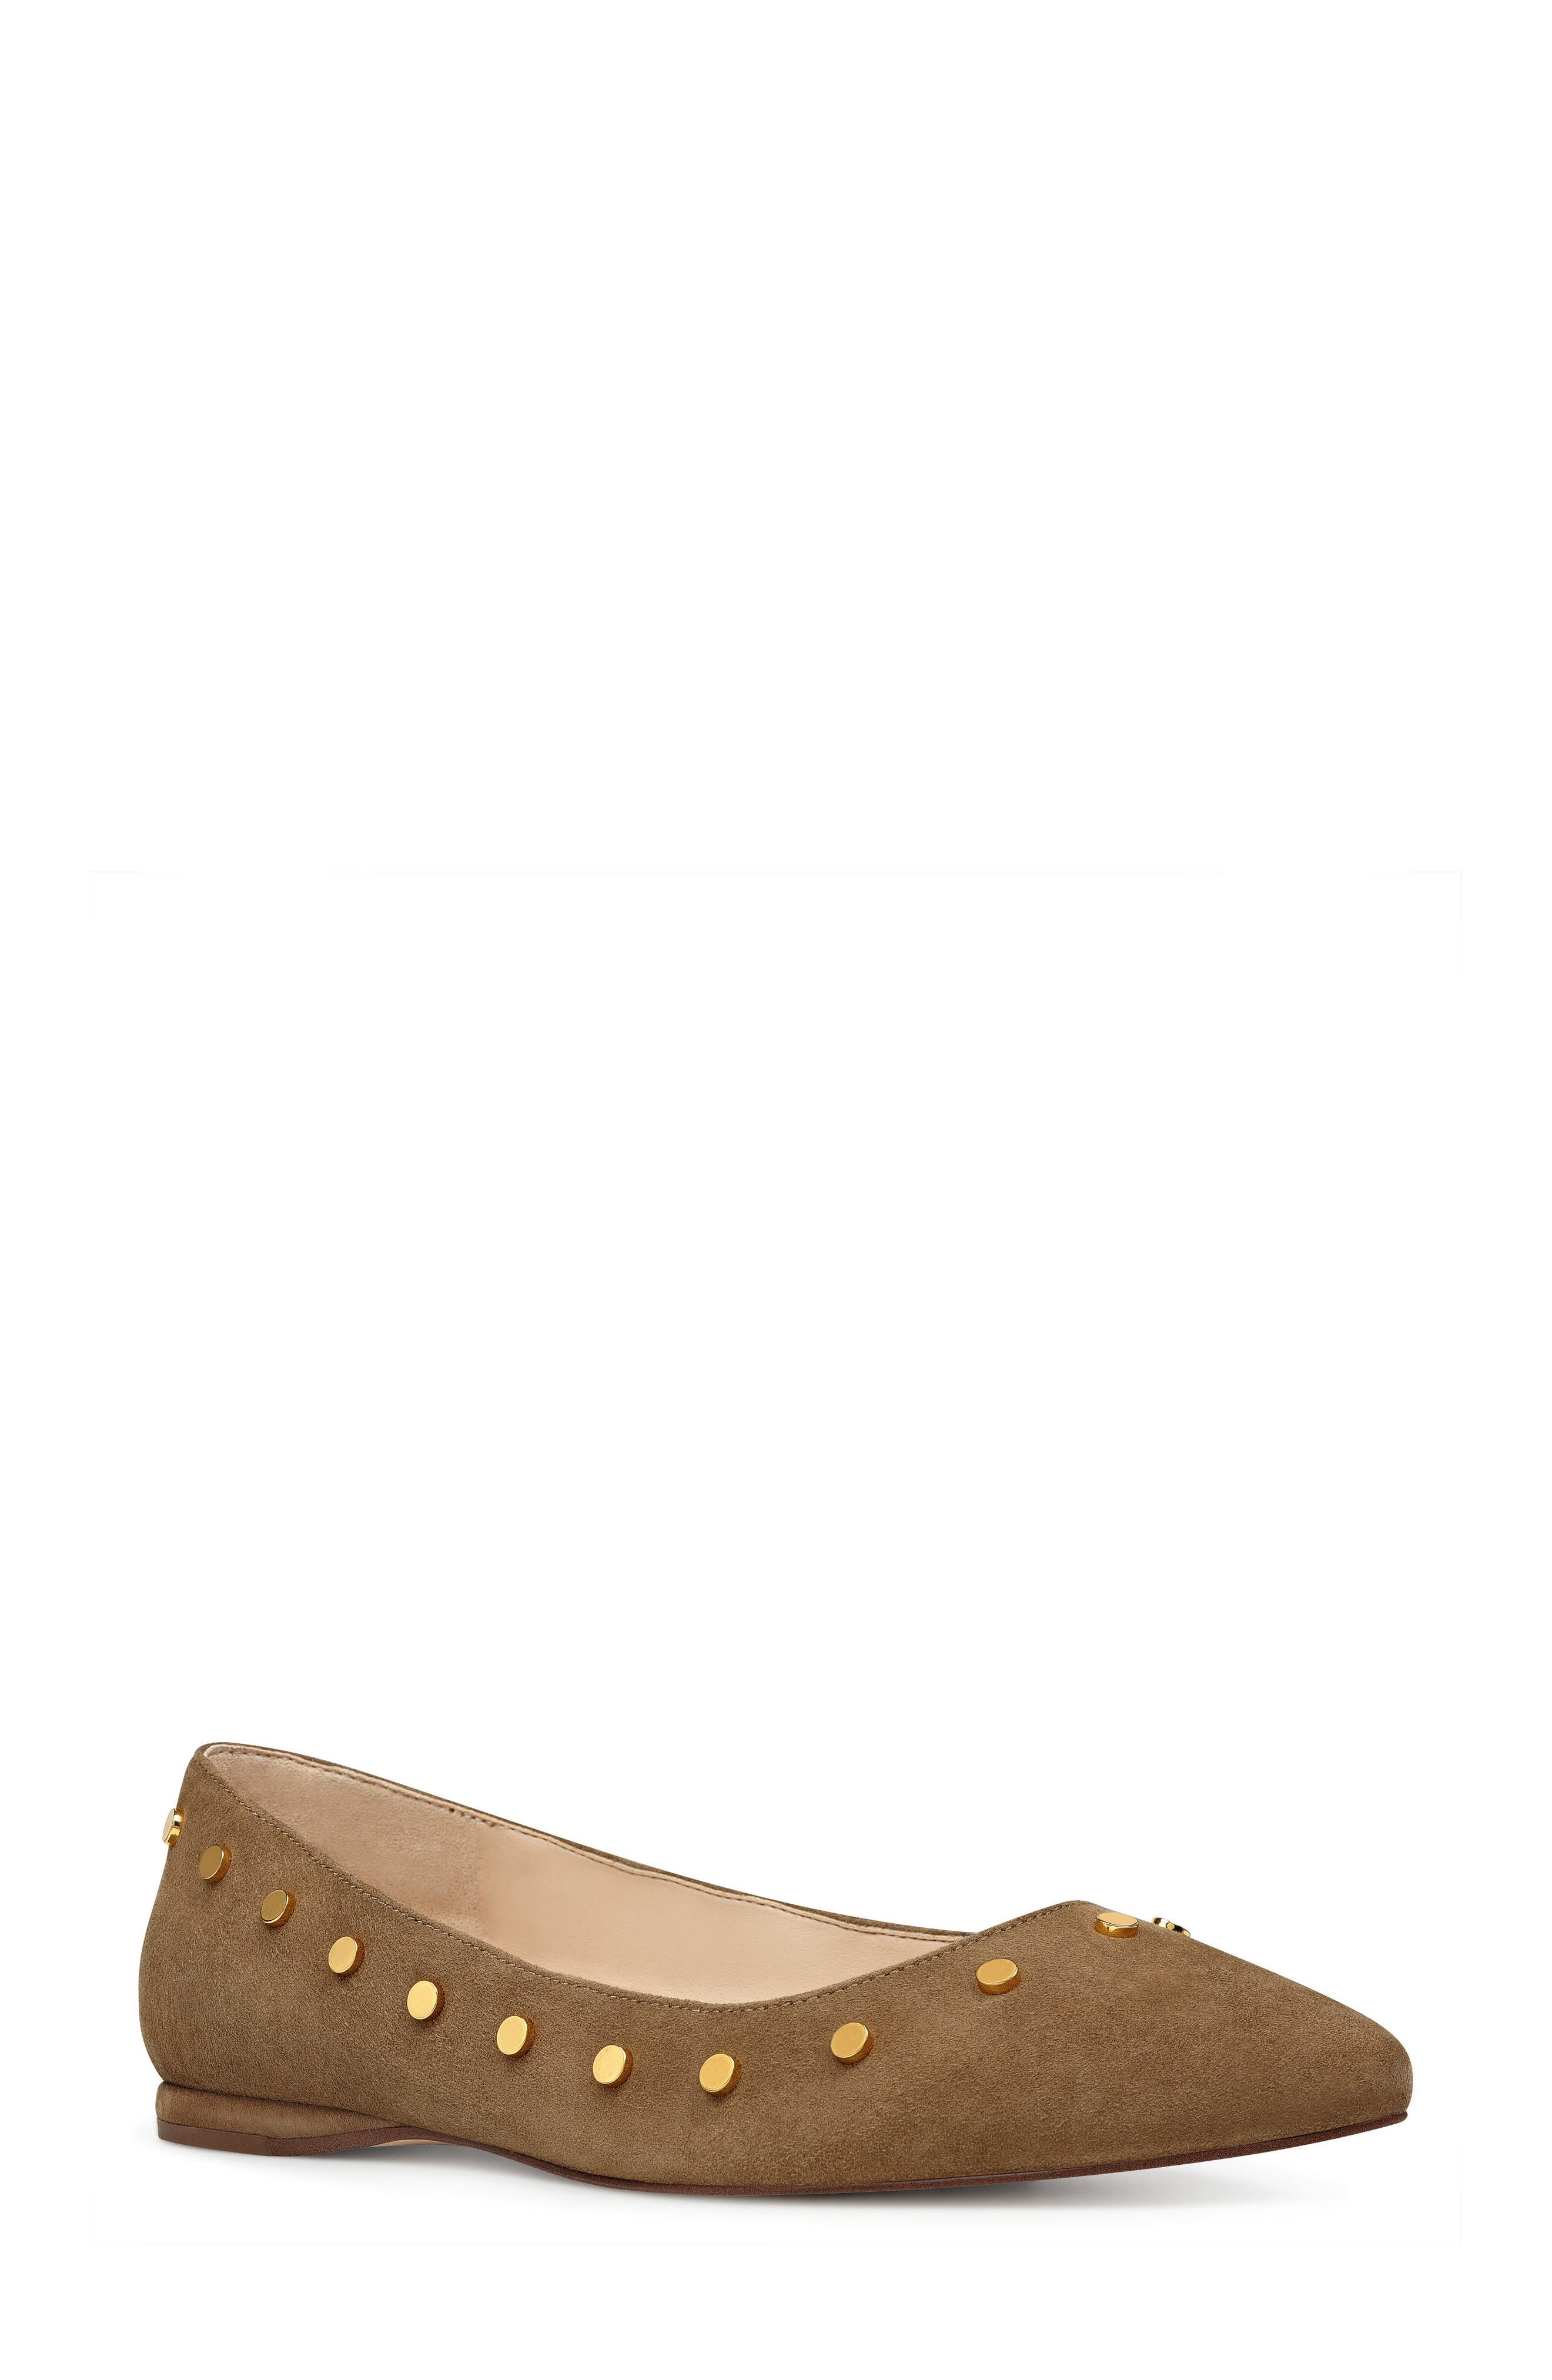 Sigismonda Studded Flat,                             Main thumbnail 1, color,                             Green Suede